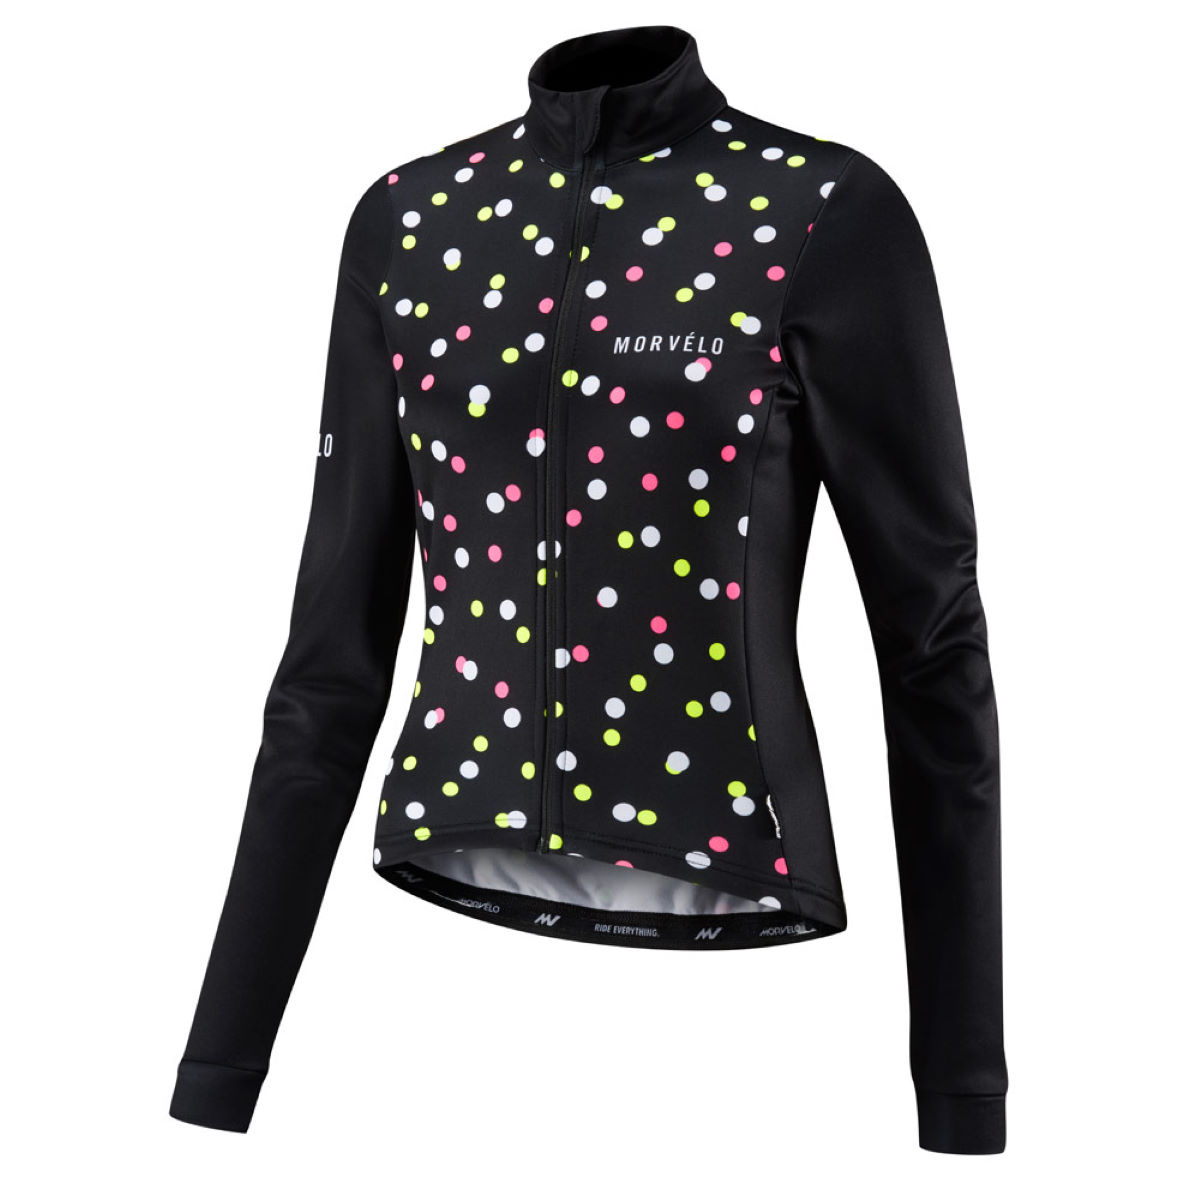 Maillot Femme Morvelo Gumball Thermoactive (manches longues) - M